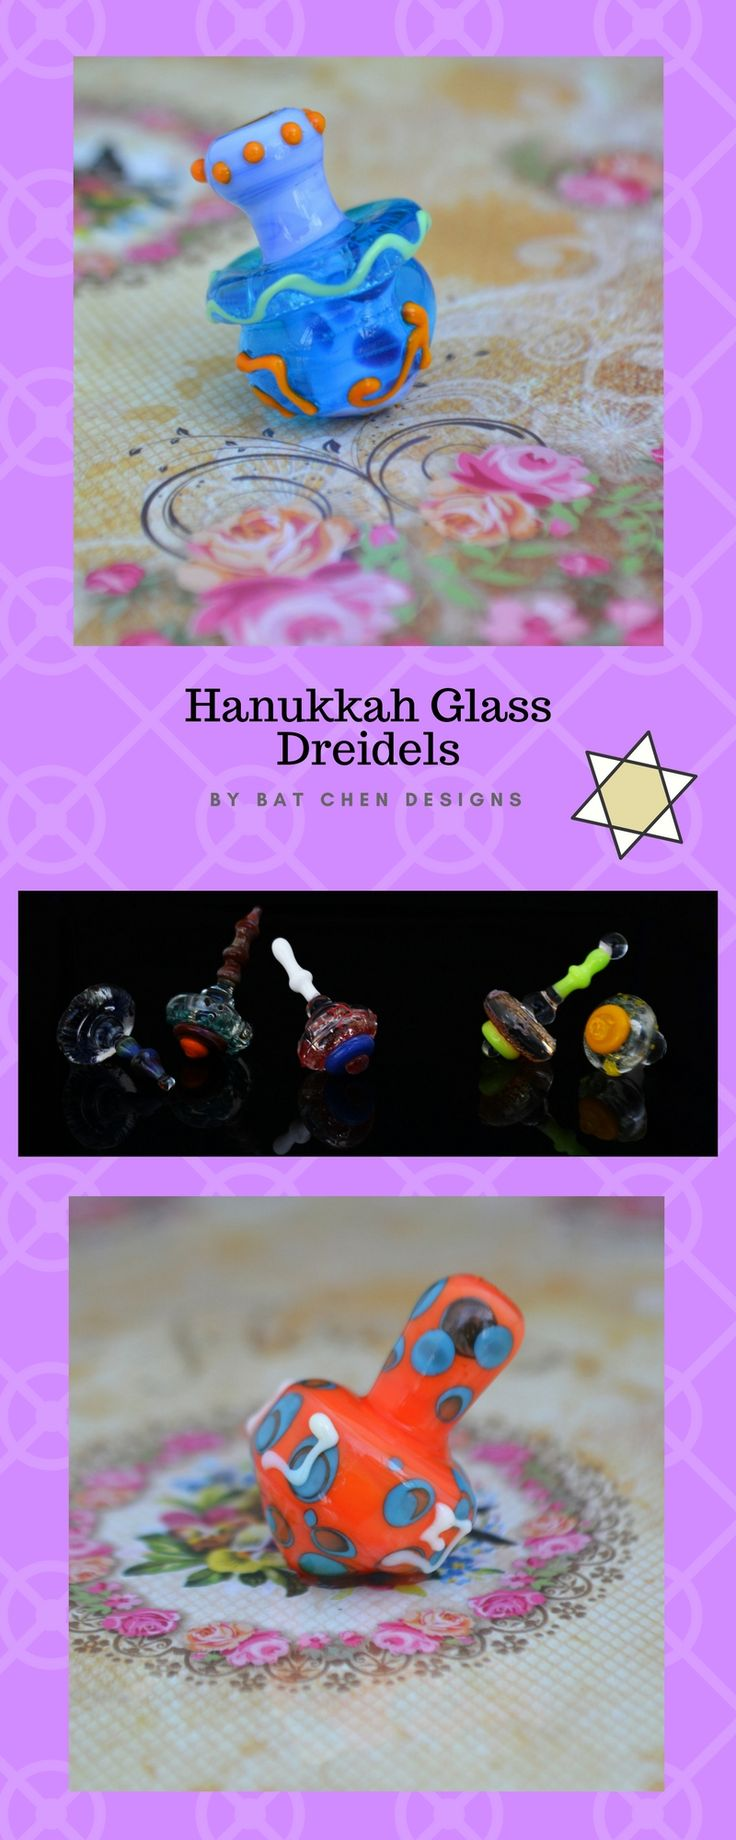 A unique collection of handmade glass dreidels made in JERUSALEM by Bat Chen Designs